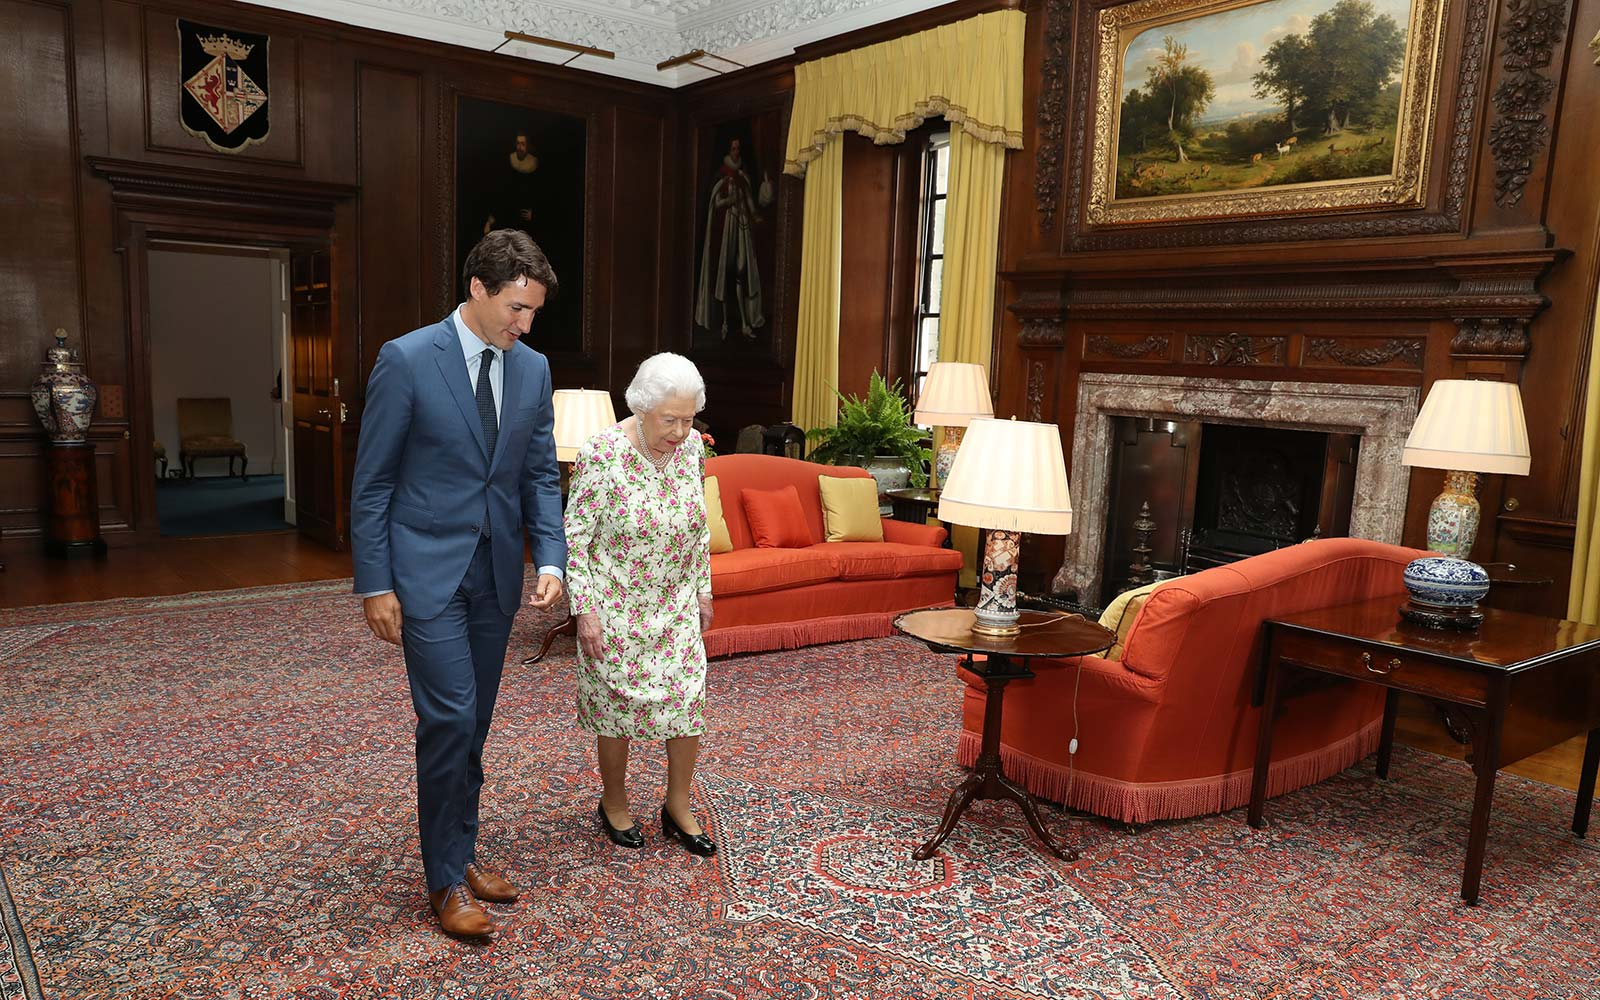 Queen Elizabeth II greets Canadian Prime Minister Justin Trudeau during an audience at the Palace of Holyroodhouse in Edinburgh, Scotland